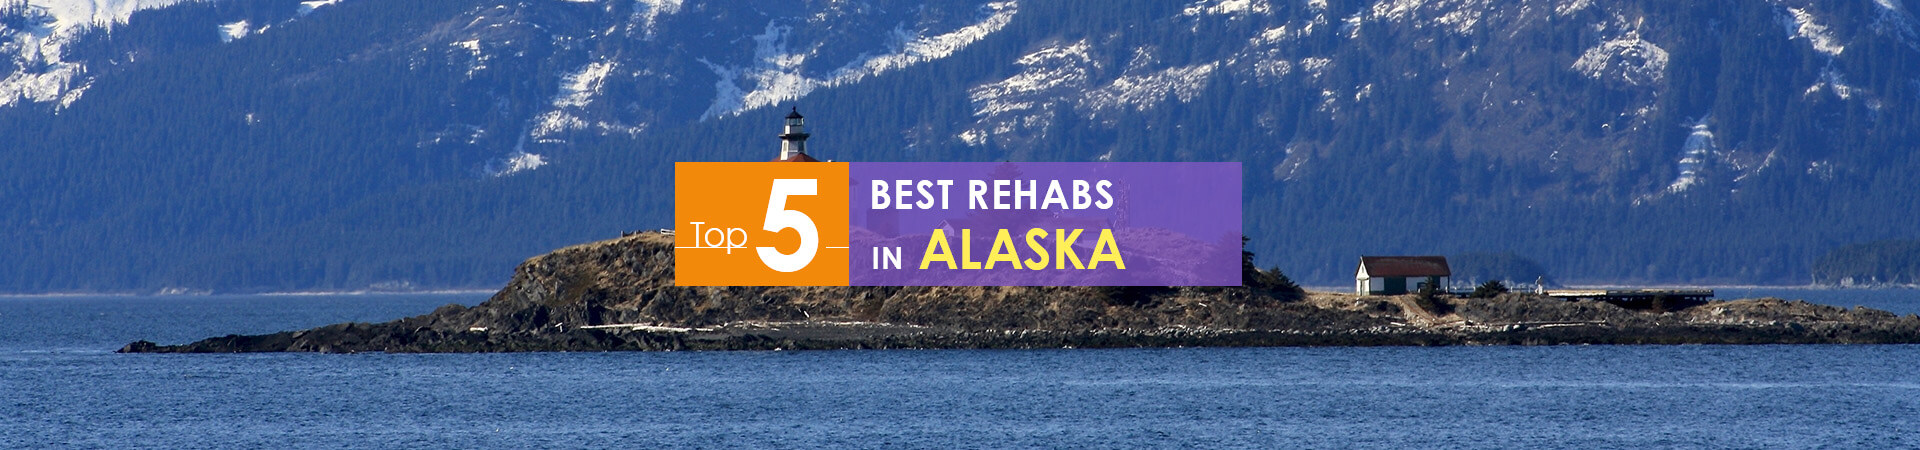 Alaska lighthouse view and top 5 rehabs caption